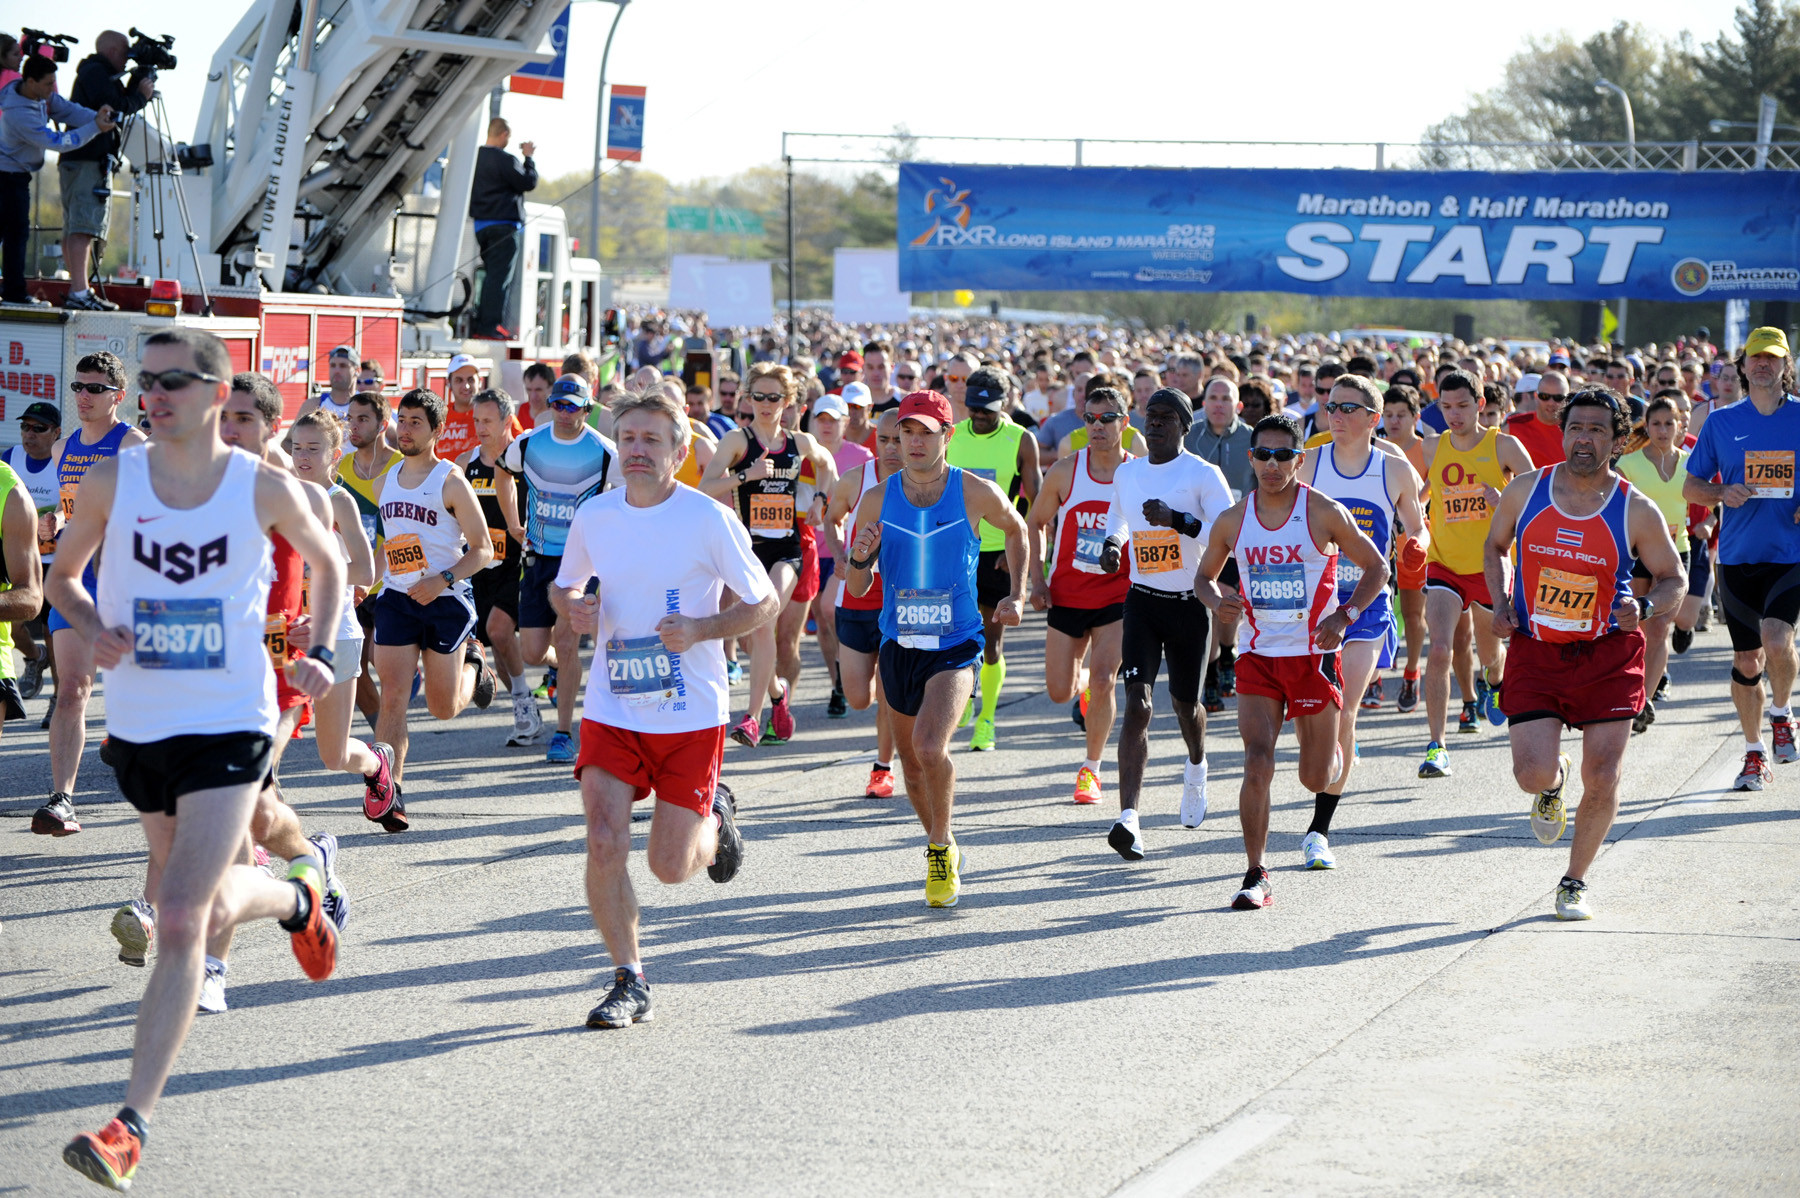 More than 8,000 runners took part in last weekend's Long Island Marathon, which began on Charles Lindbergh Boulevard in Uniondale.